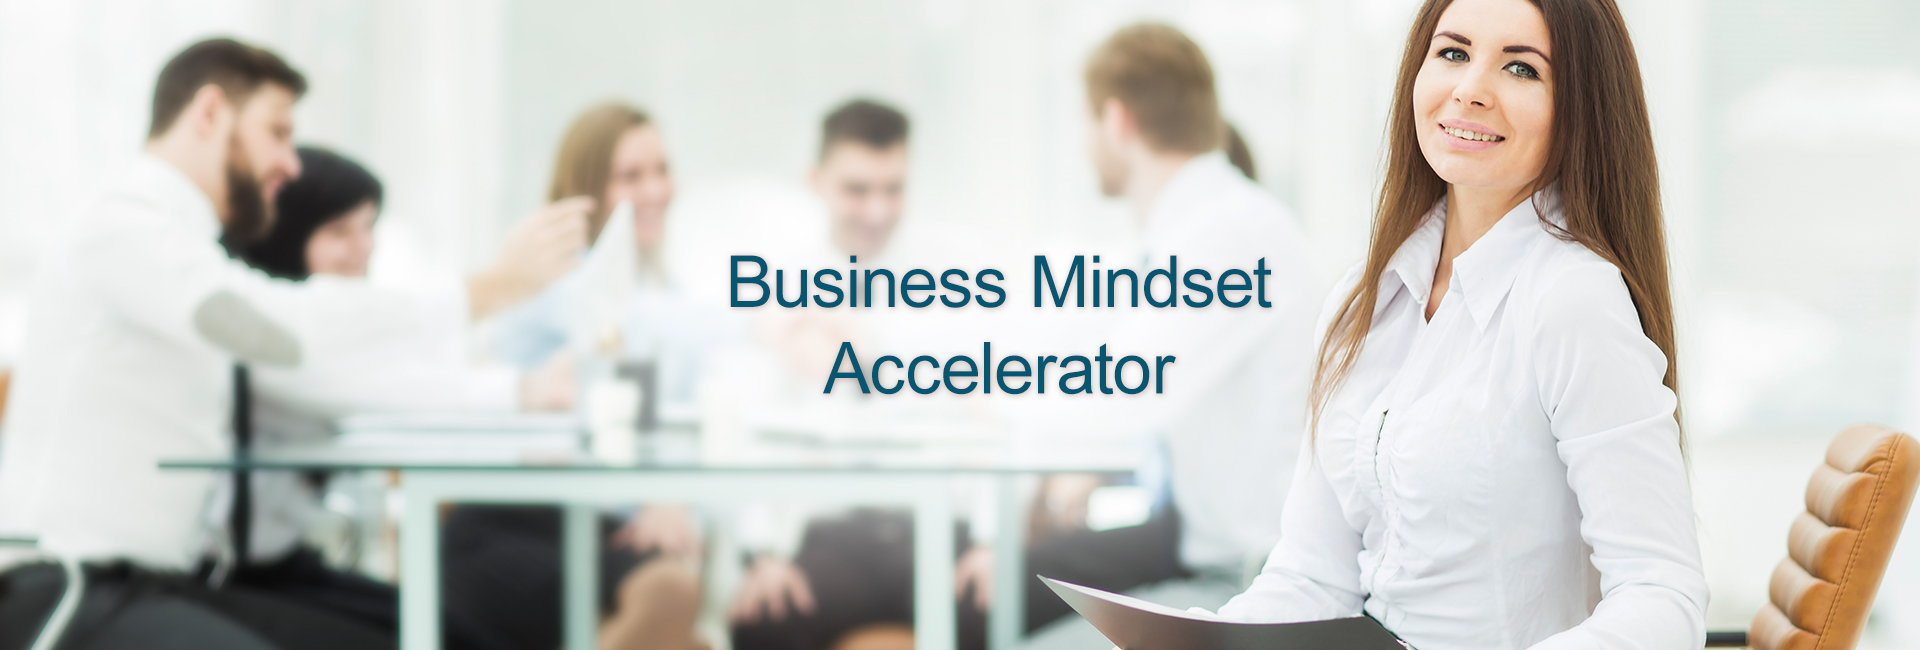 slide_business_mindset_accelerator